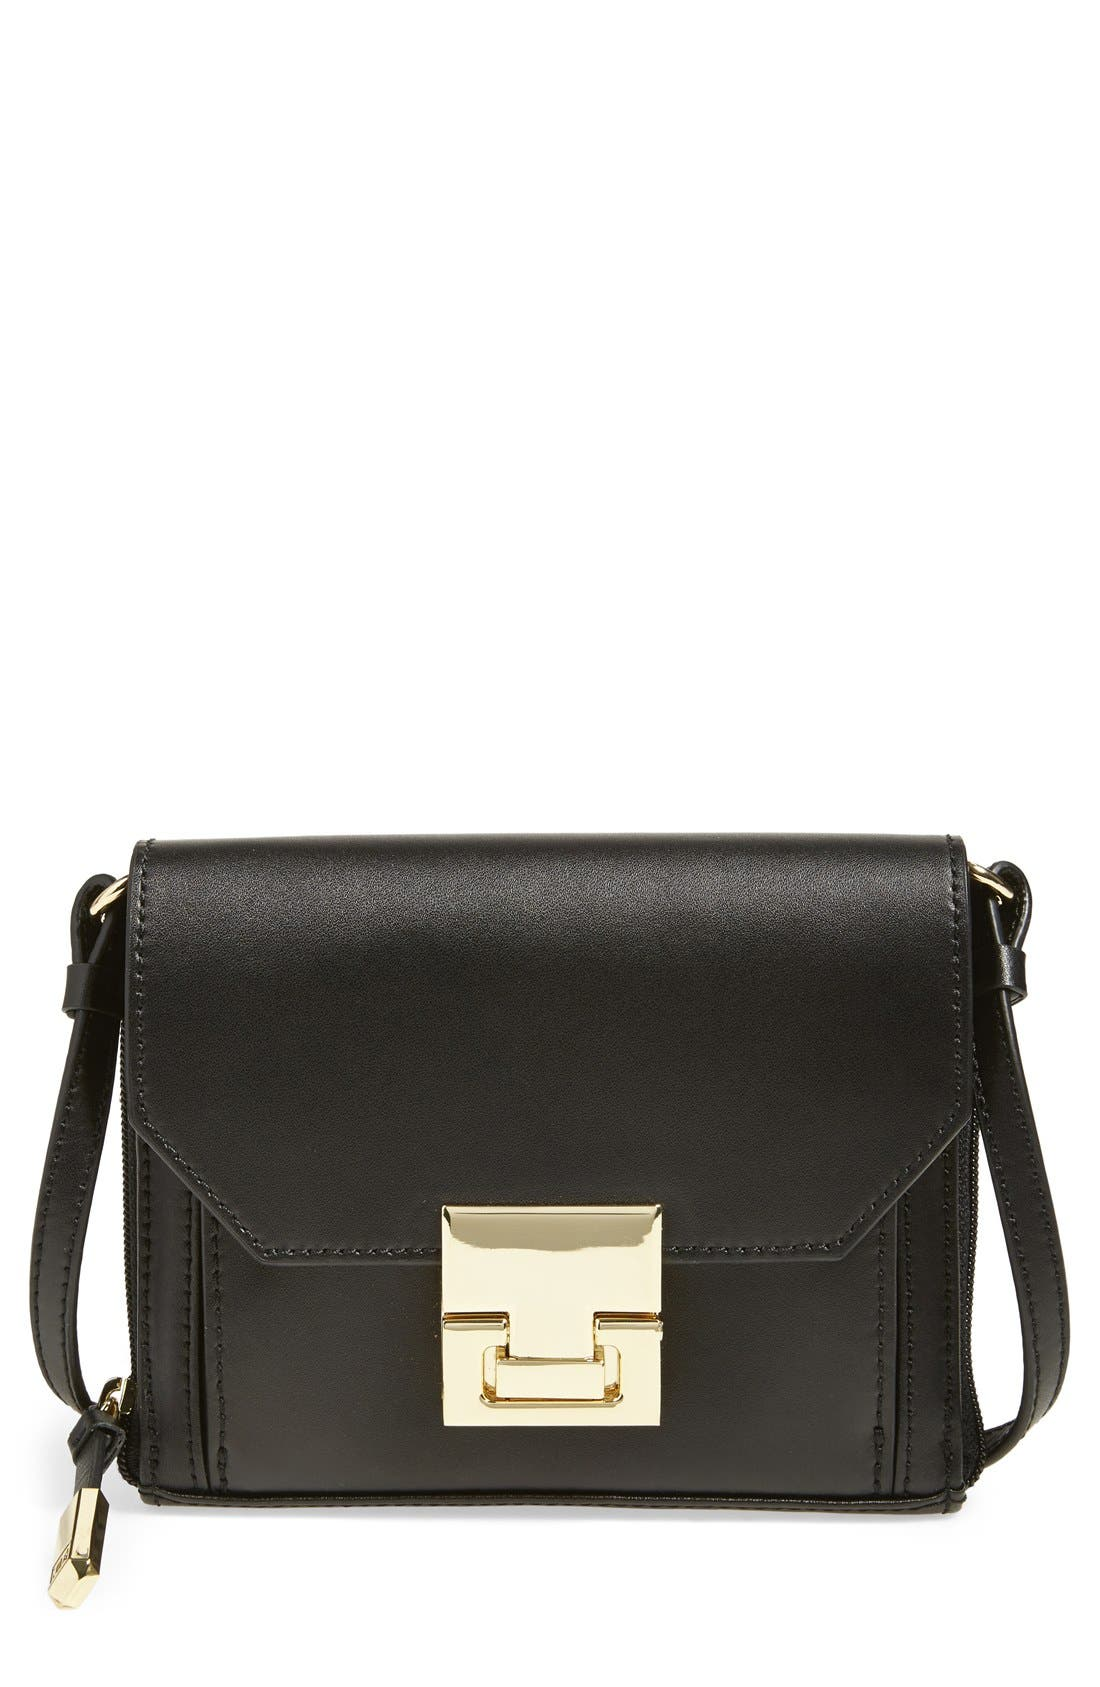 Alternate Image 1 Selected - Ivanka Trump 'Hopewell' Crossbody Bag